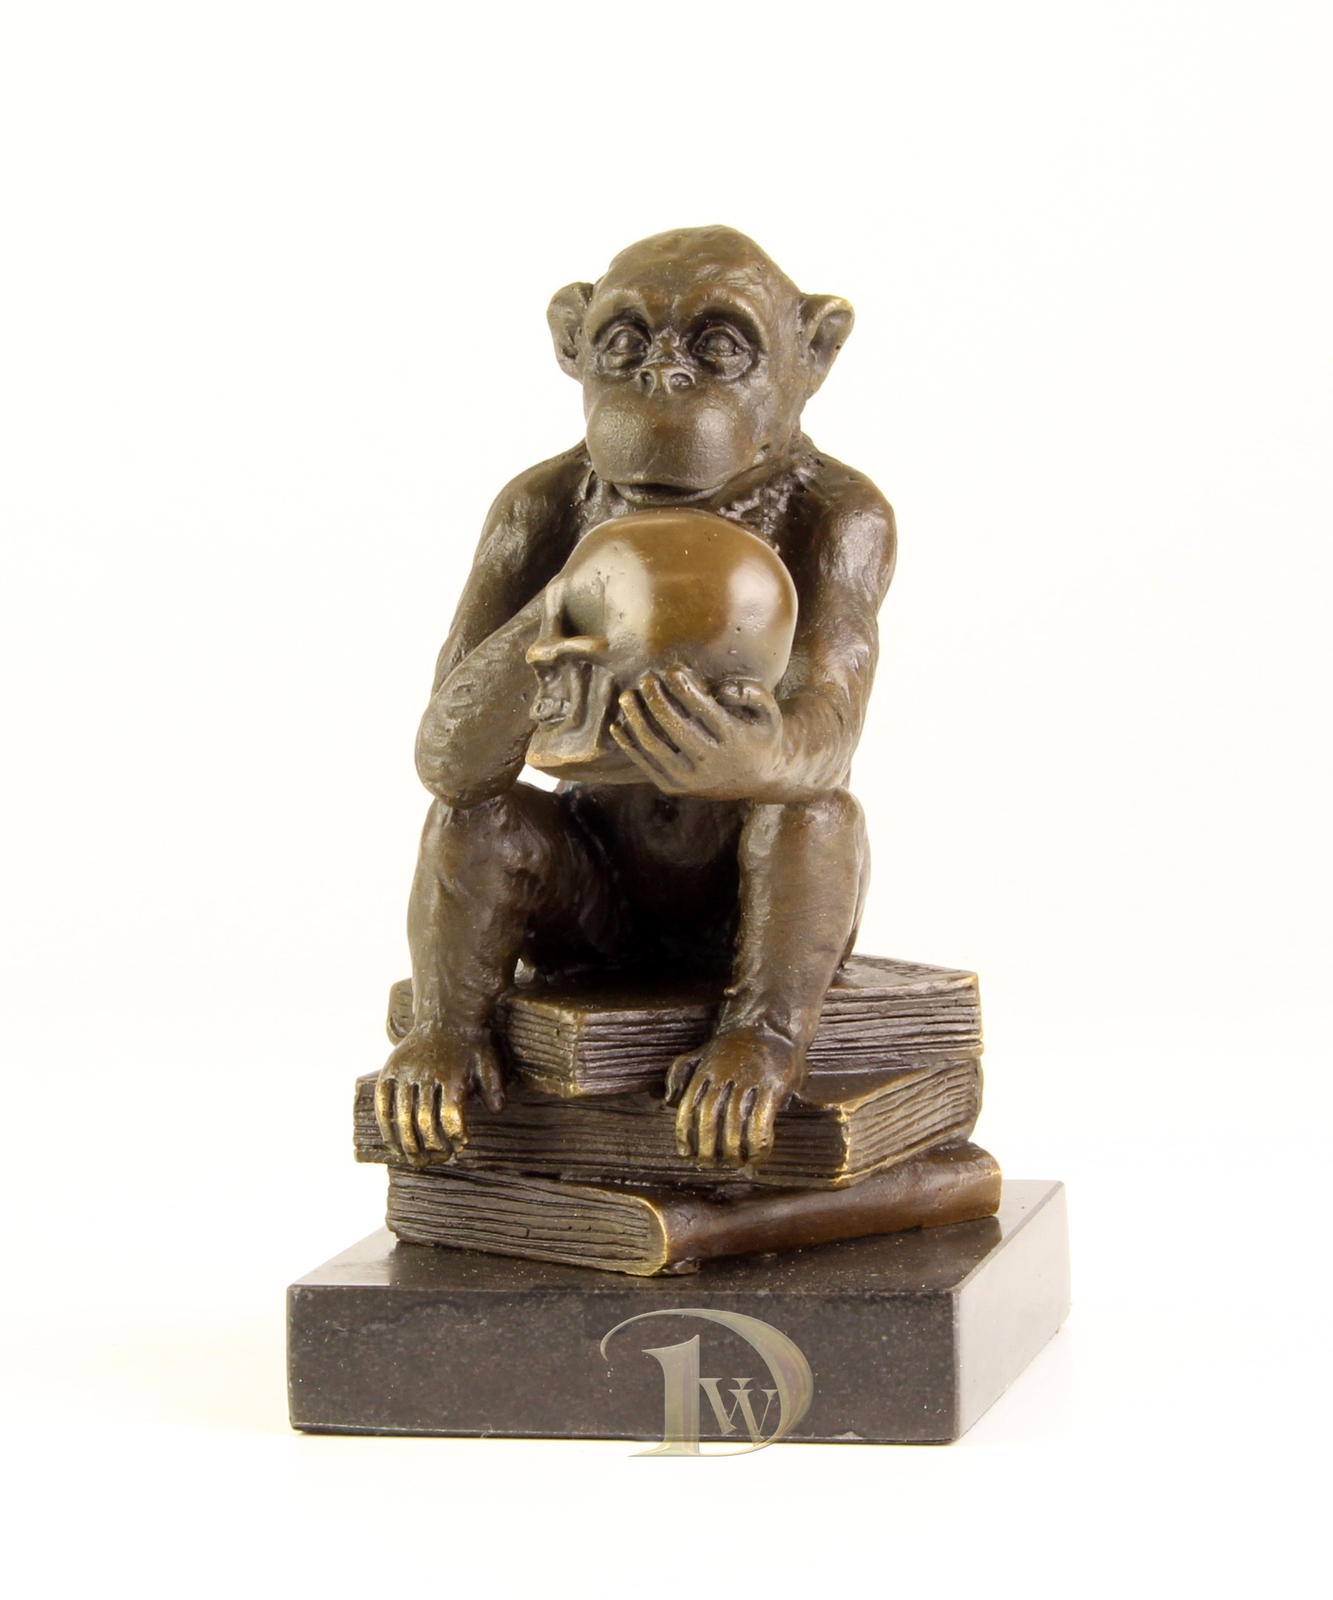 Antique Home Decor Bronze Sculpture shows Ape with Skull signed * Free Shipping